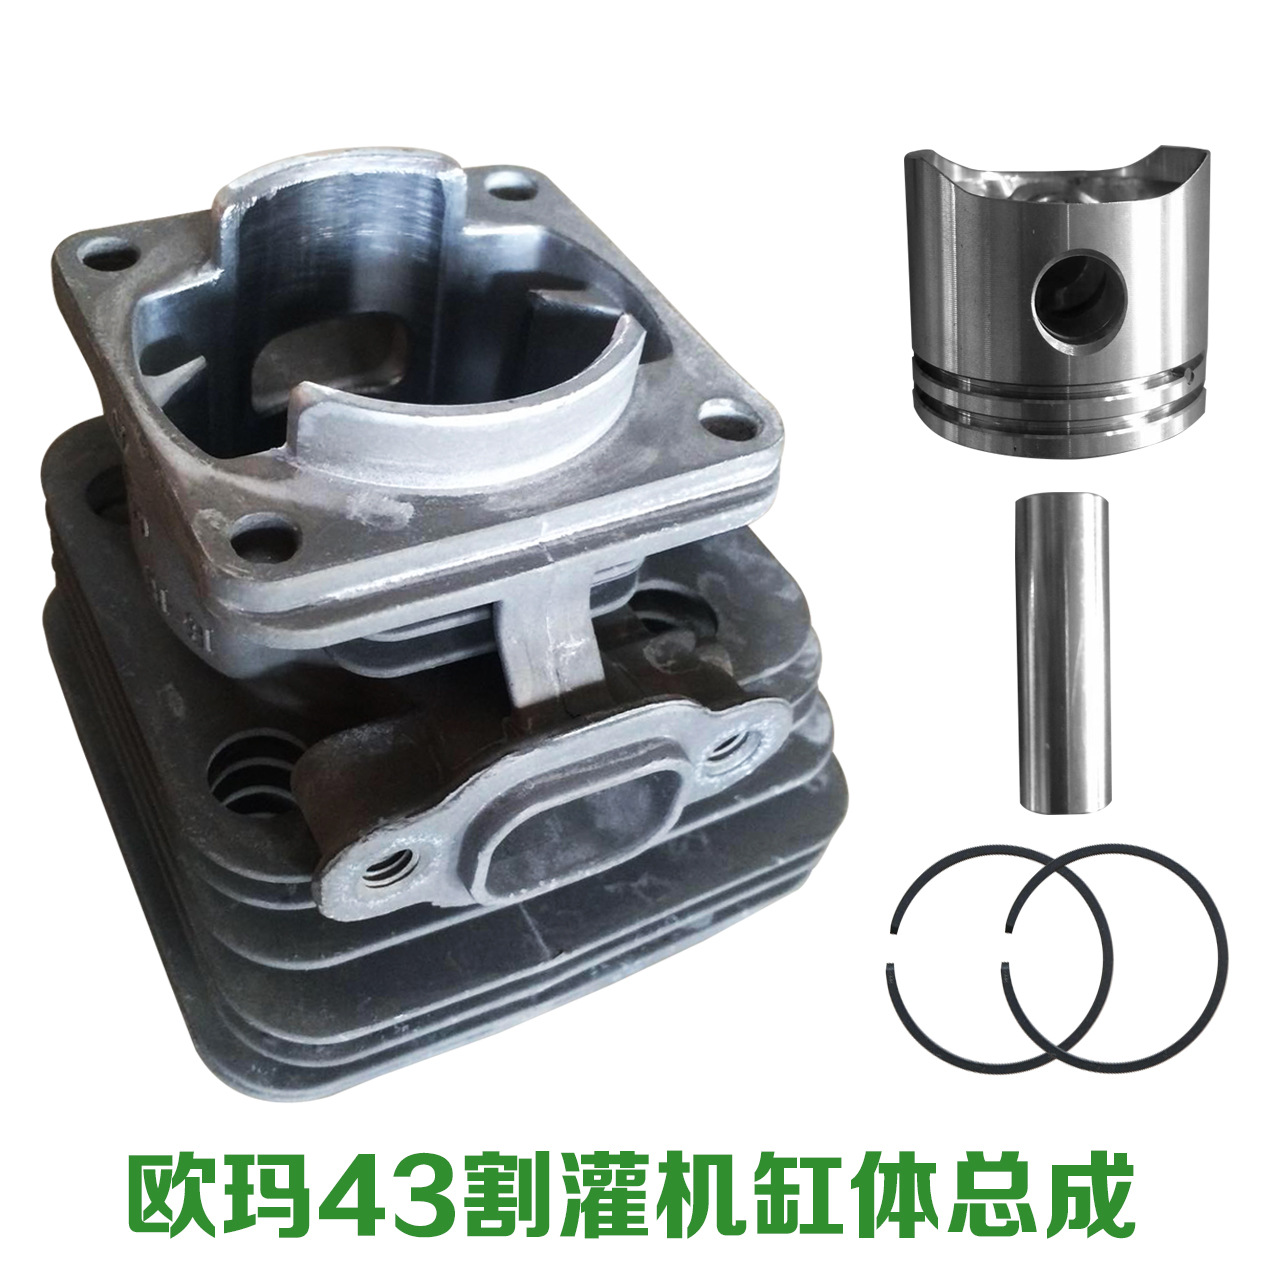 1 SET 40mm cylinder piston ring kit FITS FOR OLEO-MAC 43/44 BRUSH CUTTER GRASS TRIMMER LAWN MOWER SPARE PARTS 42mm cylinder piston with air filter fuel line for stihl fs450 4128 020 1211 trimmer brush cutter lawn mower tiller engine